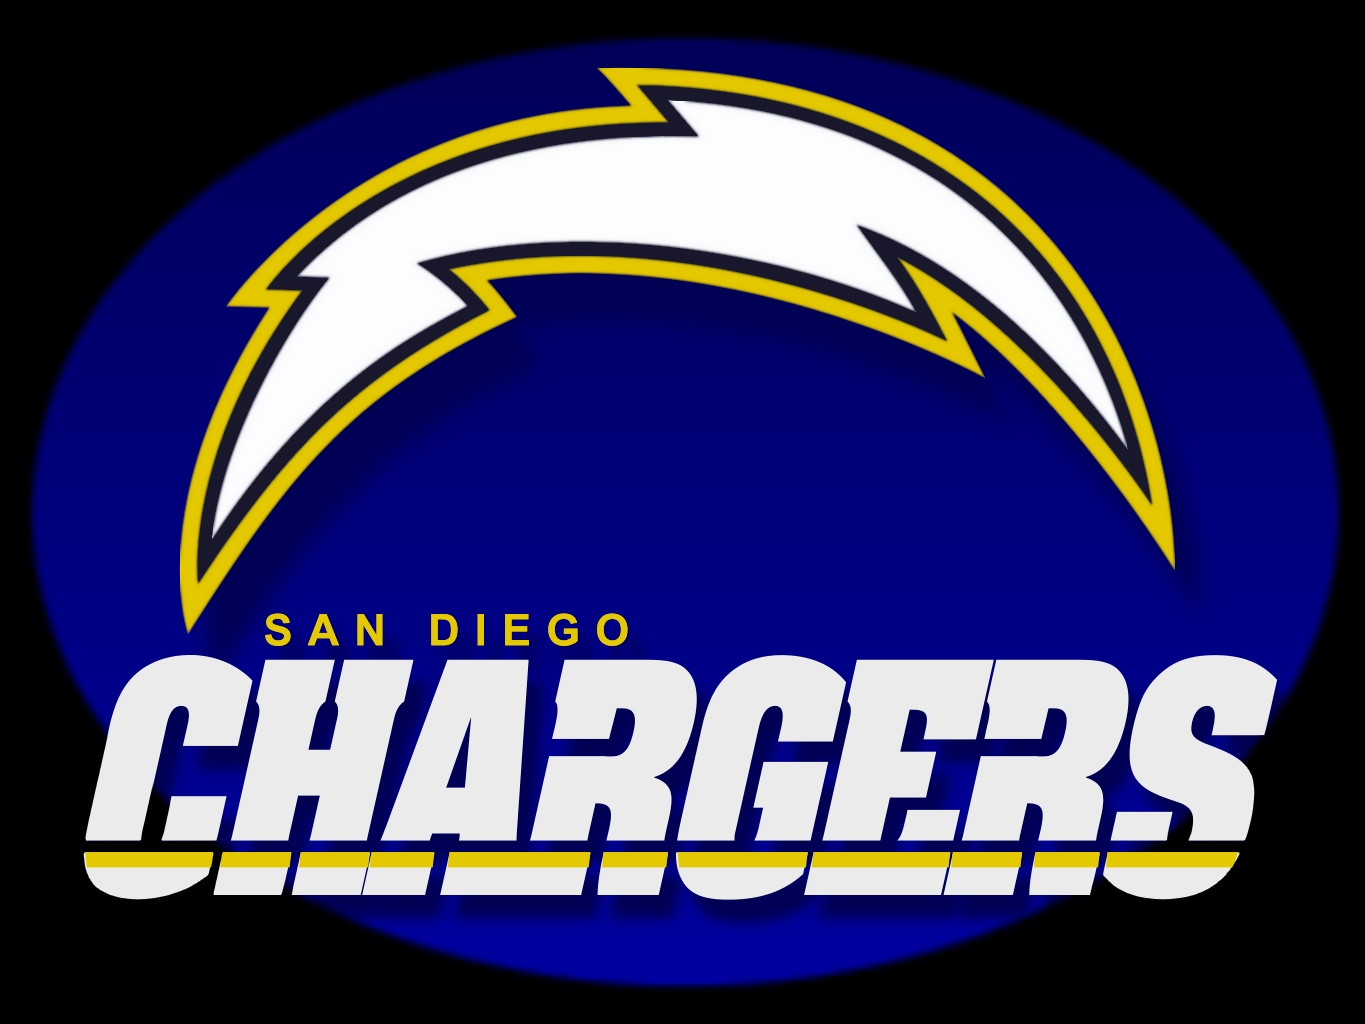 San Diego Chargers My Hometown Nfl Football Team